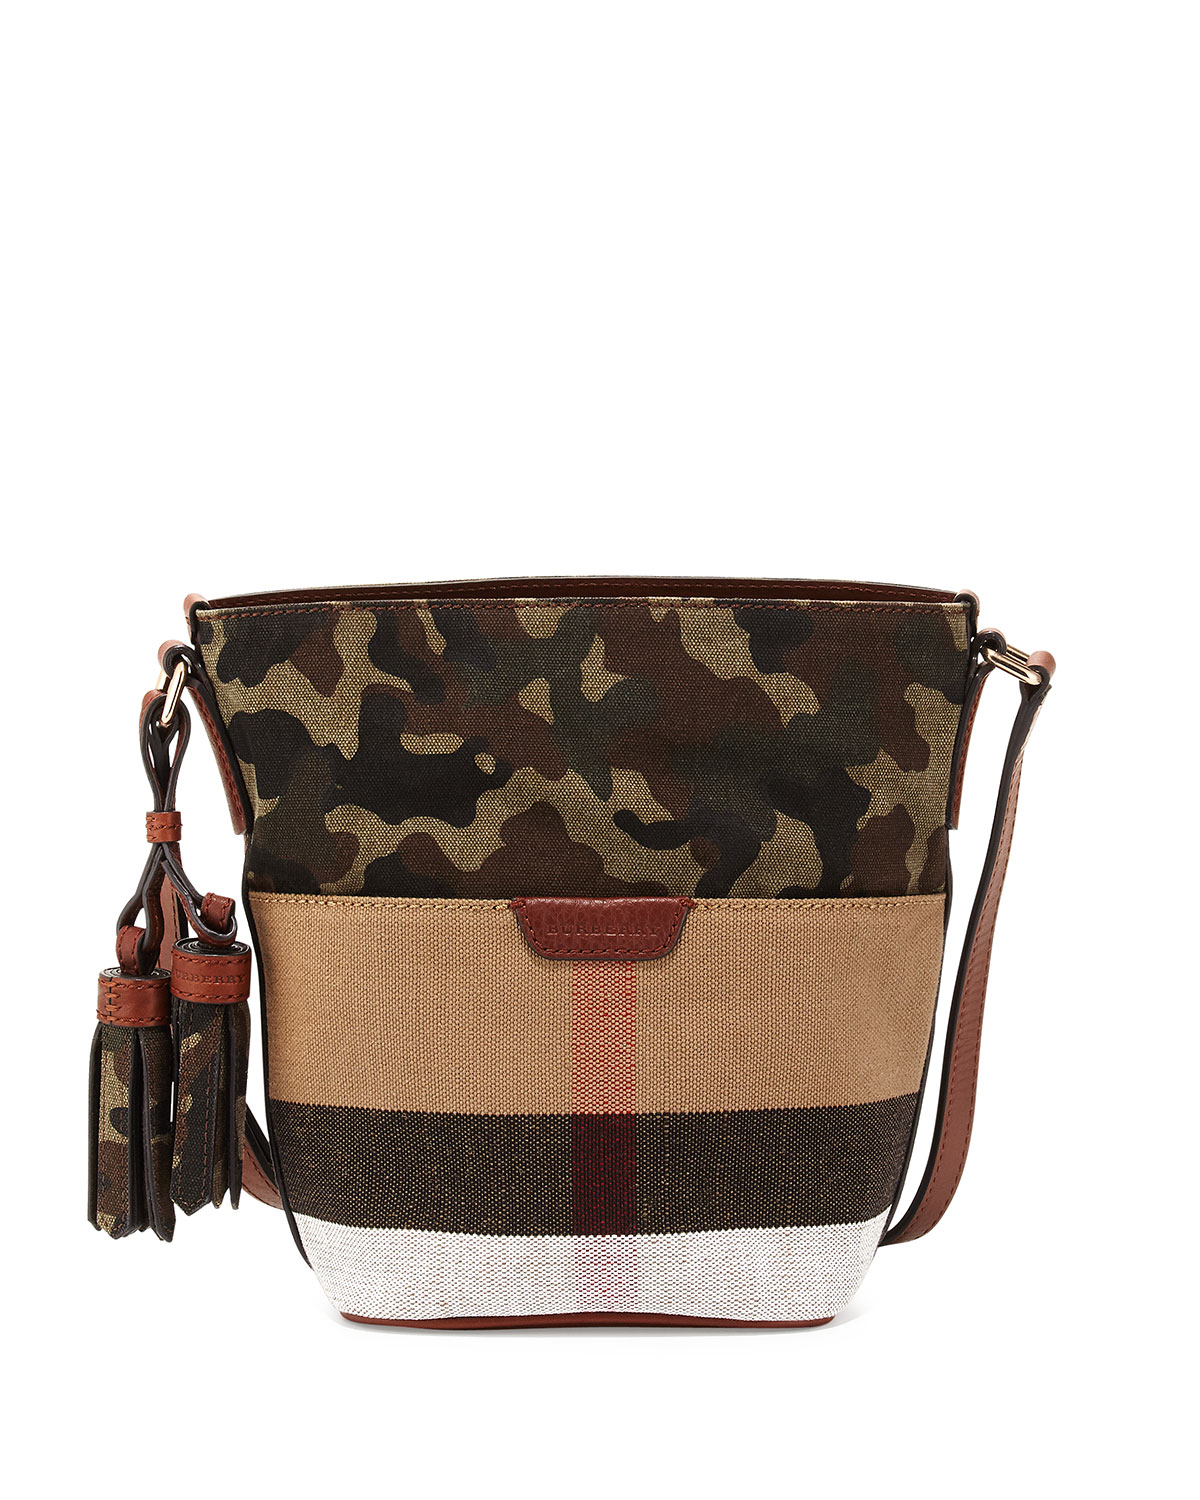 b23ac13a1061c7 Burberry Check Canvas Camo-Print Mini Bucket Bag, Rust Brown ...